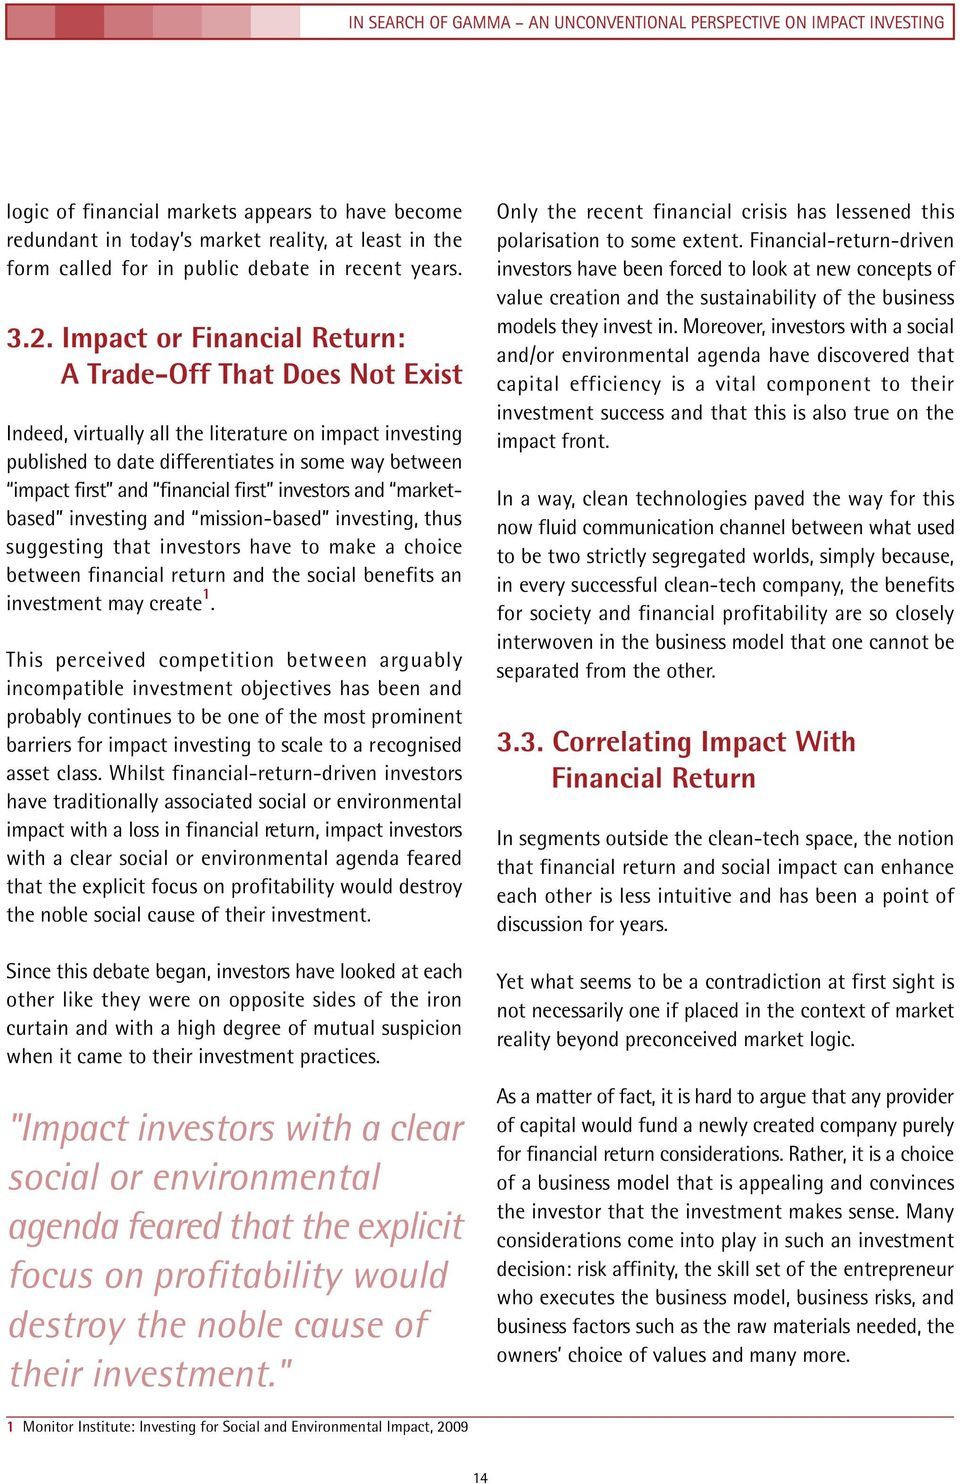 first investors and marketbased investing and mission-based investing, thus suggesting that investors have to make a choice between financial return and the social benefits an investment may create 1.